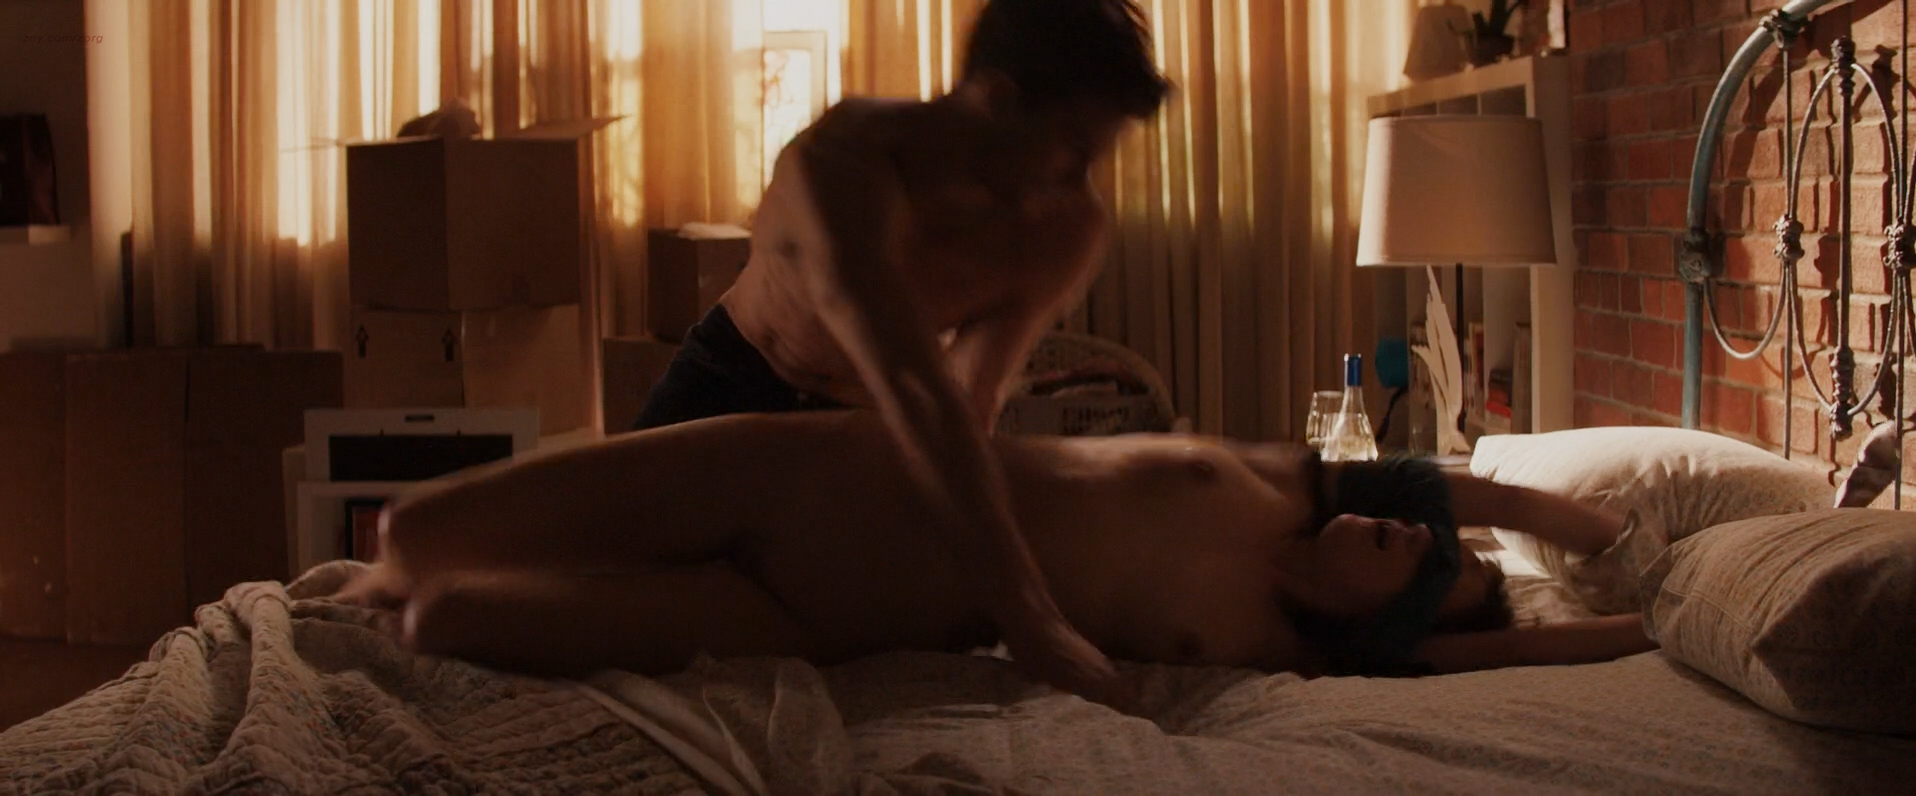 image Dakota johnson nude fifty shades of grey uncut 2015